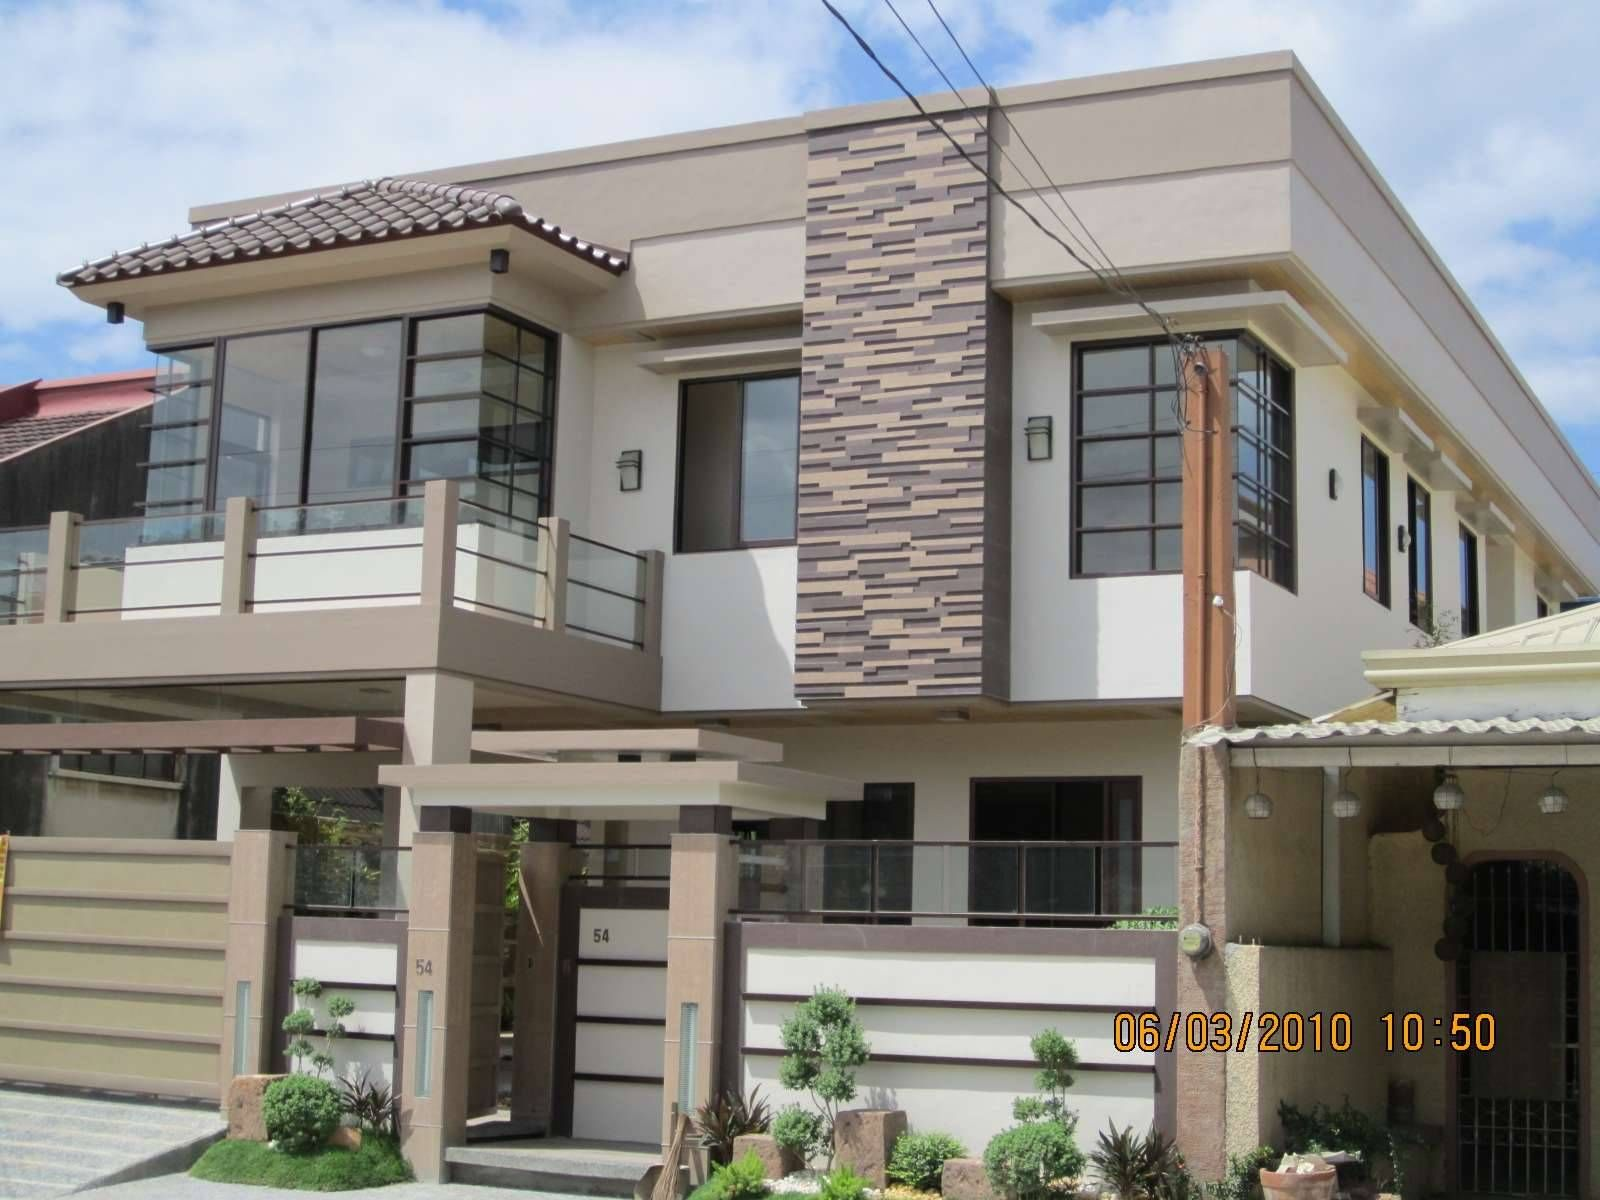 Philippines modern house exterior design dream house for Modern house design 2015 philippines